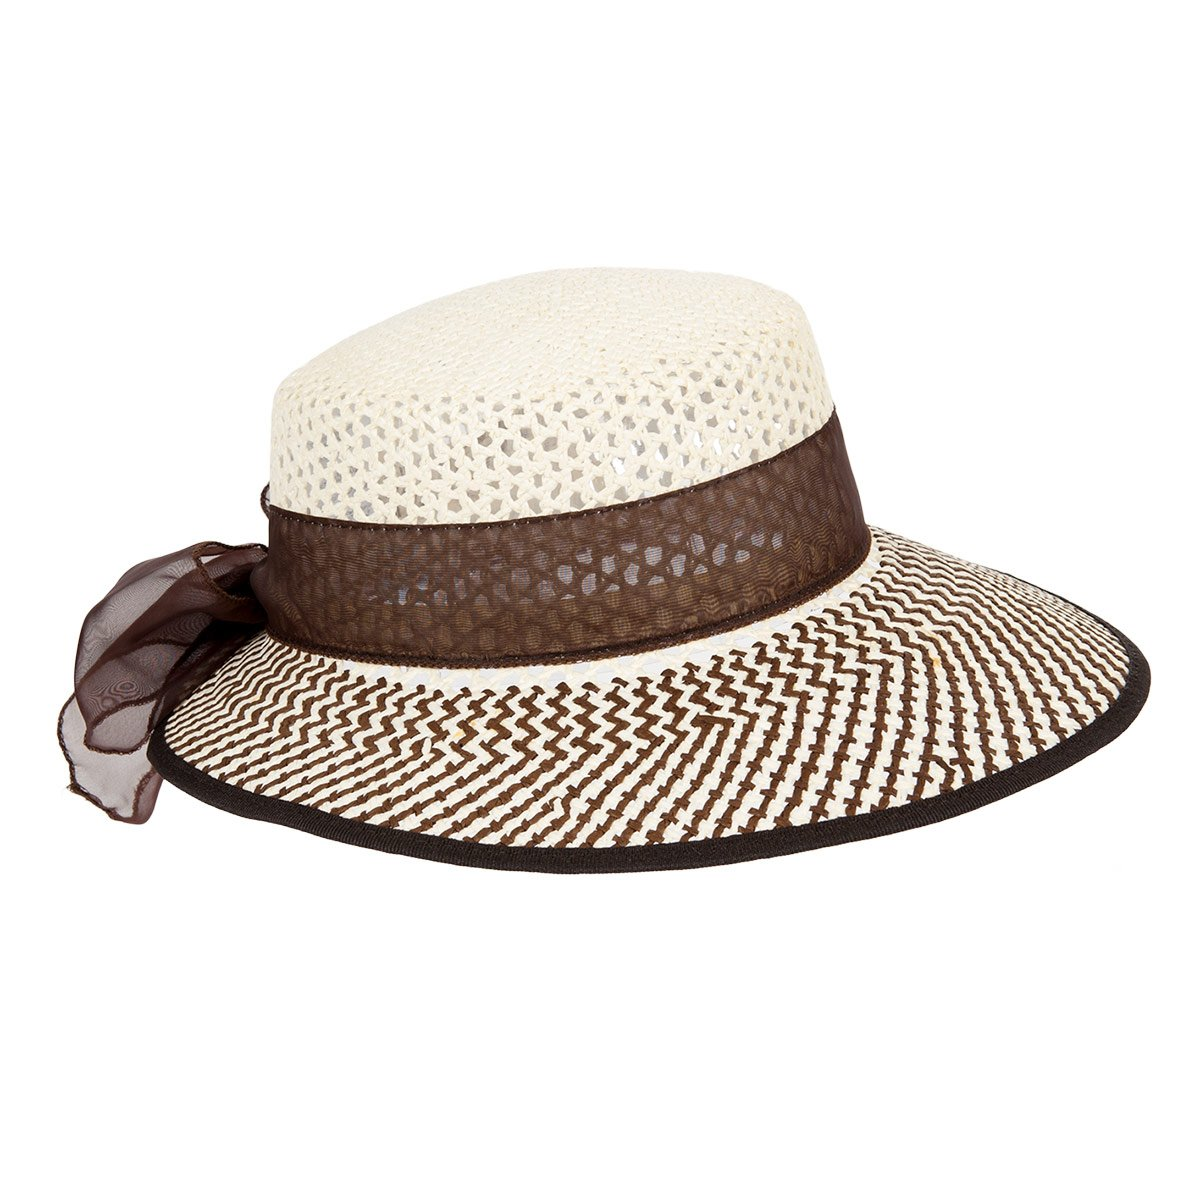 HUTTER women s summer hat with large shield 5bd565fcc2d